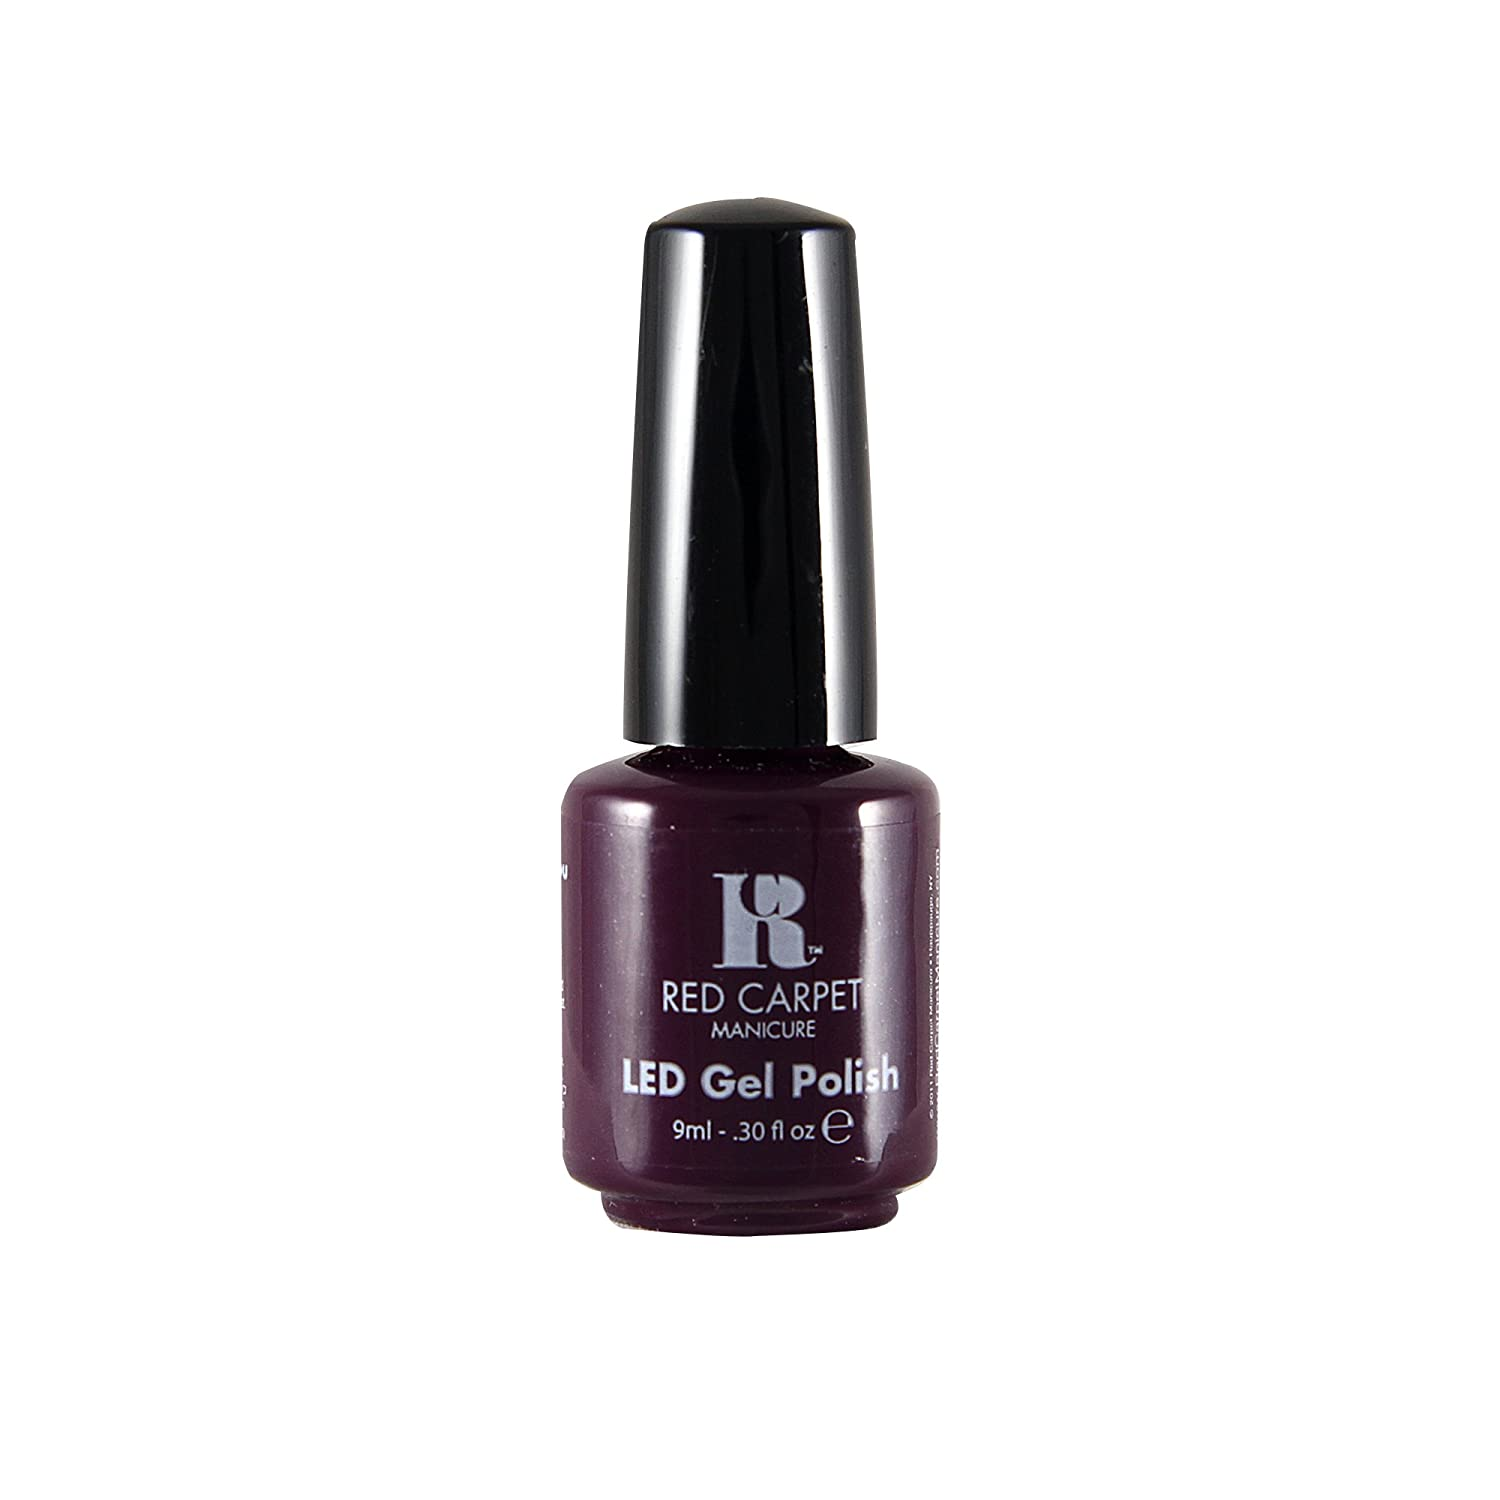 Red Carpet Manicure Gel Polish, Thank You, Thank You 20124